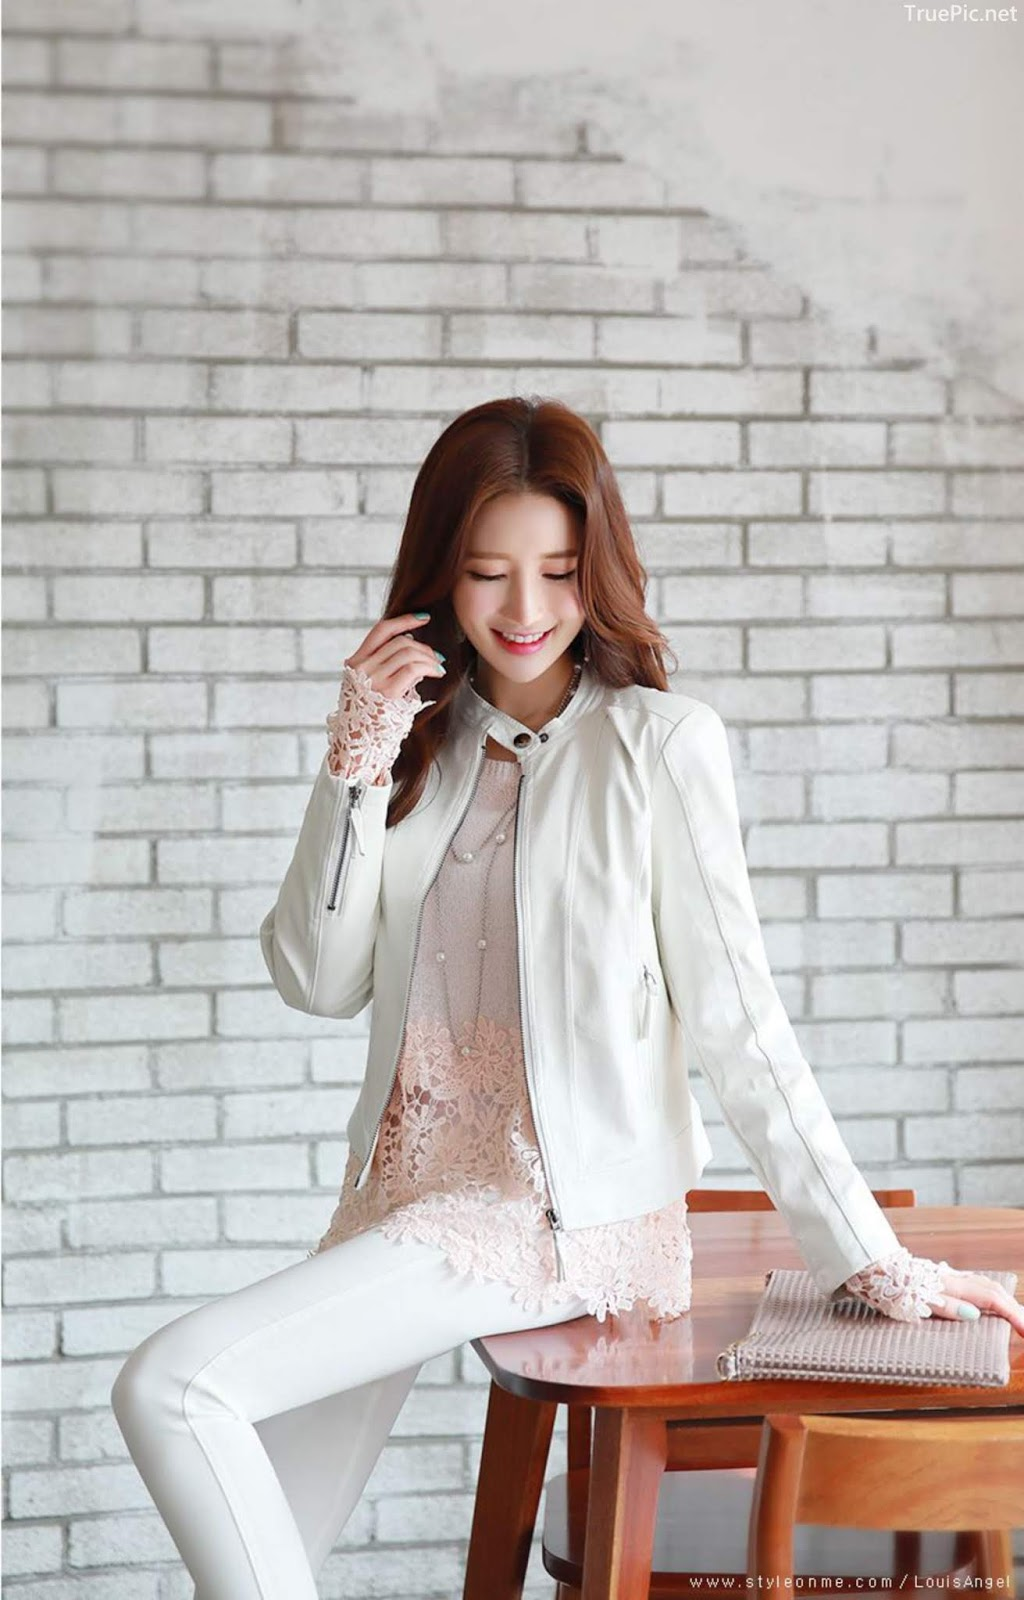 Lee Yeon Jeong - Indoor Photoshoot Collection - Korean fashion model - Part 1 - Picture 1